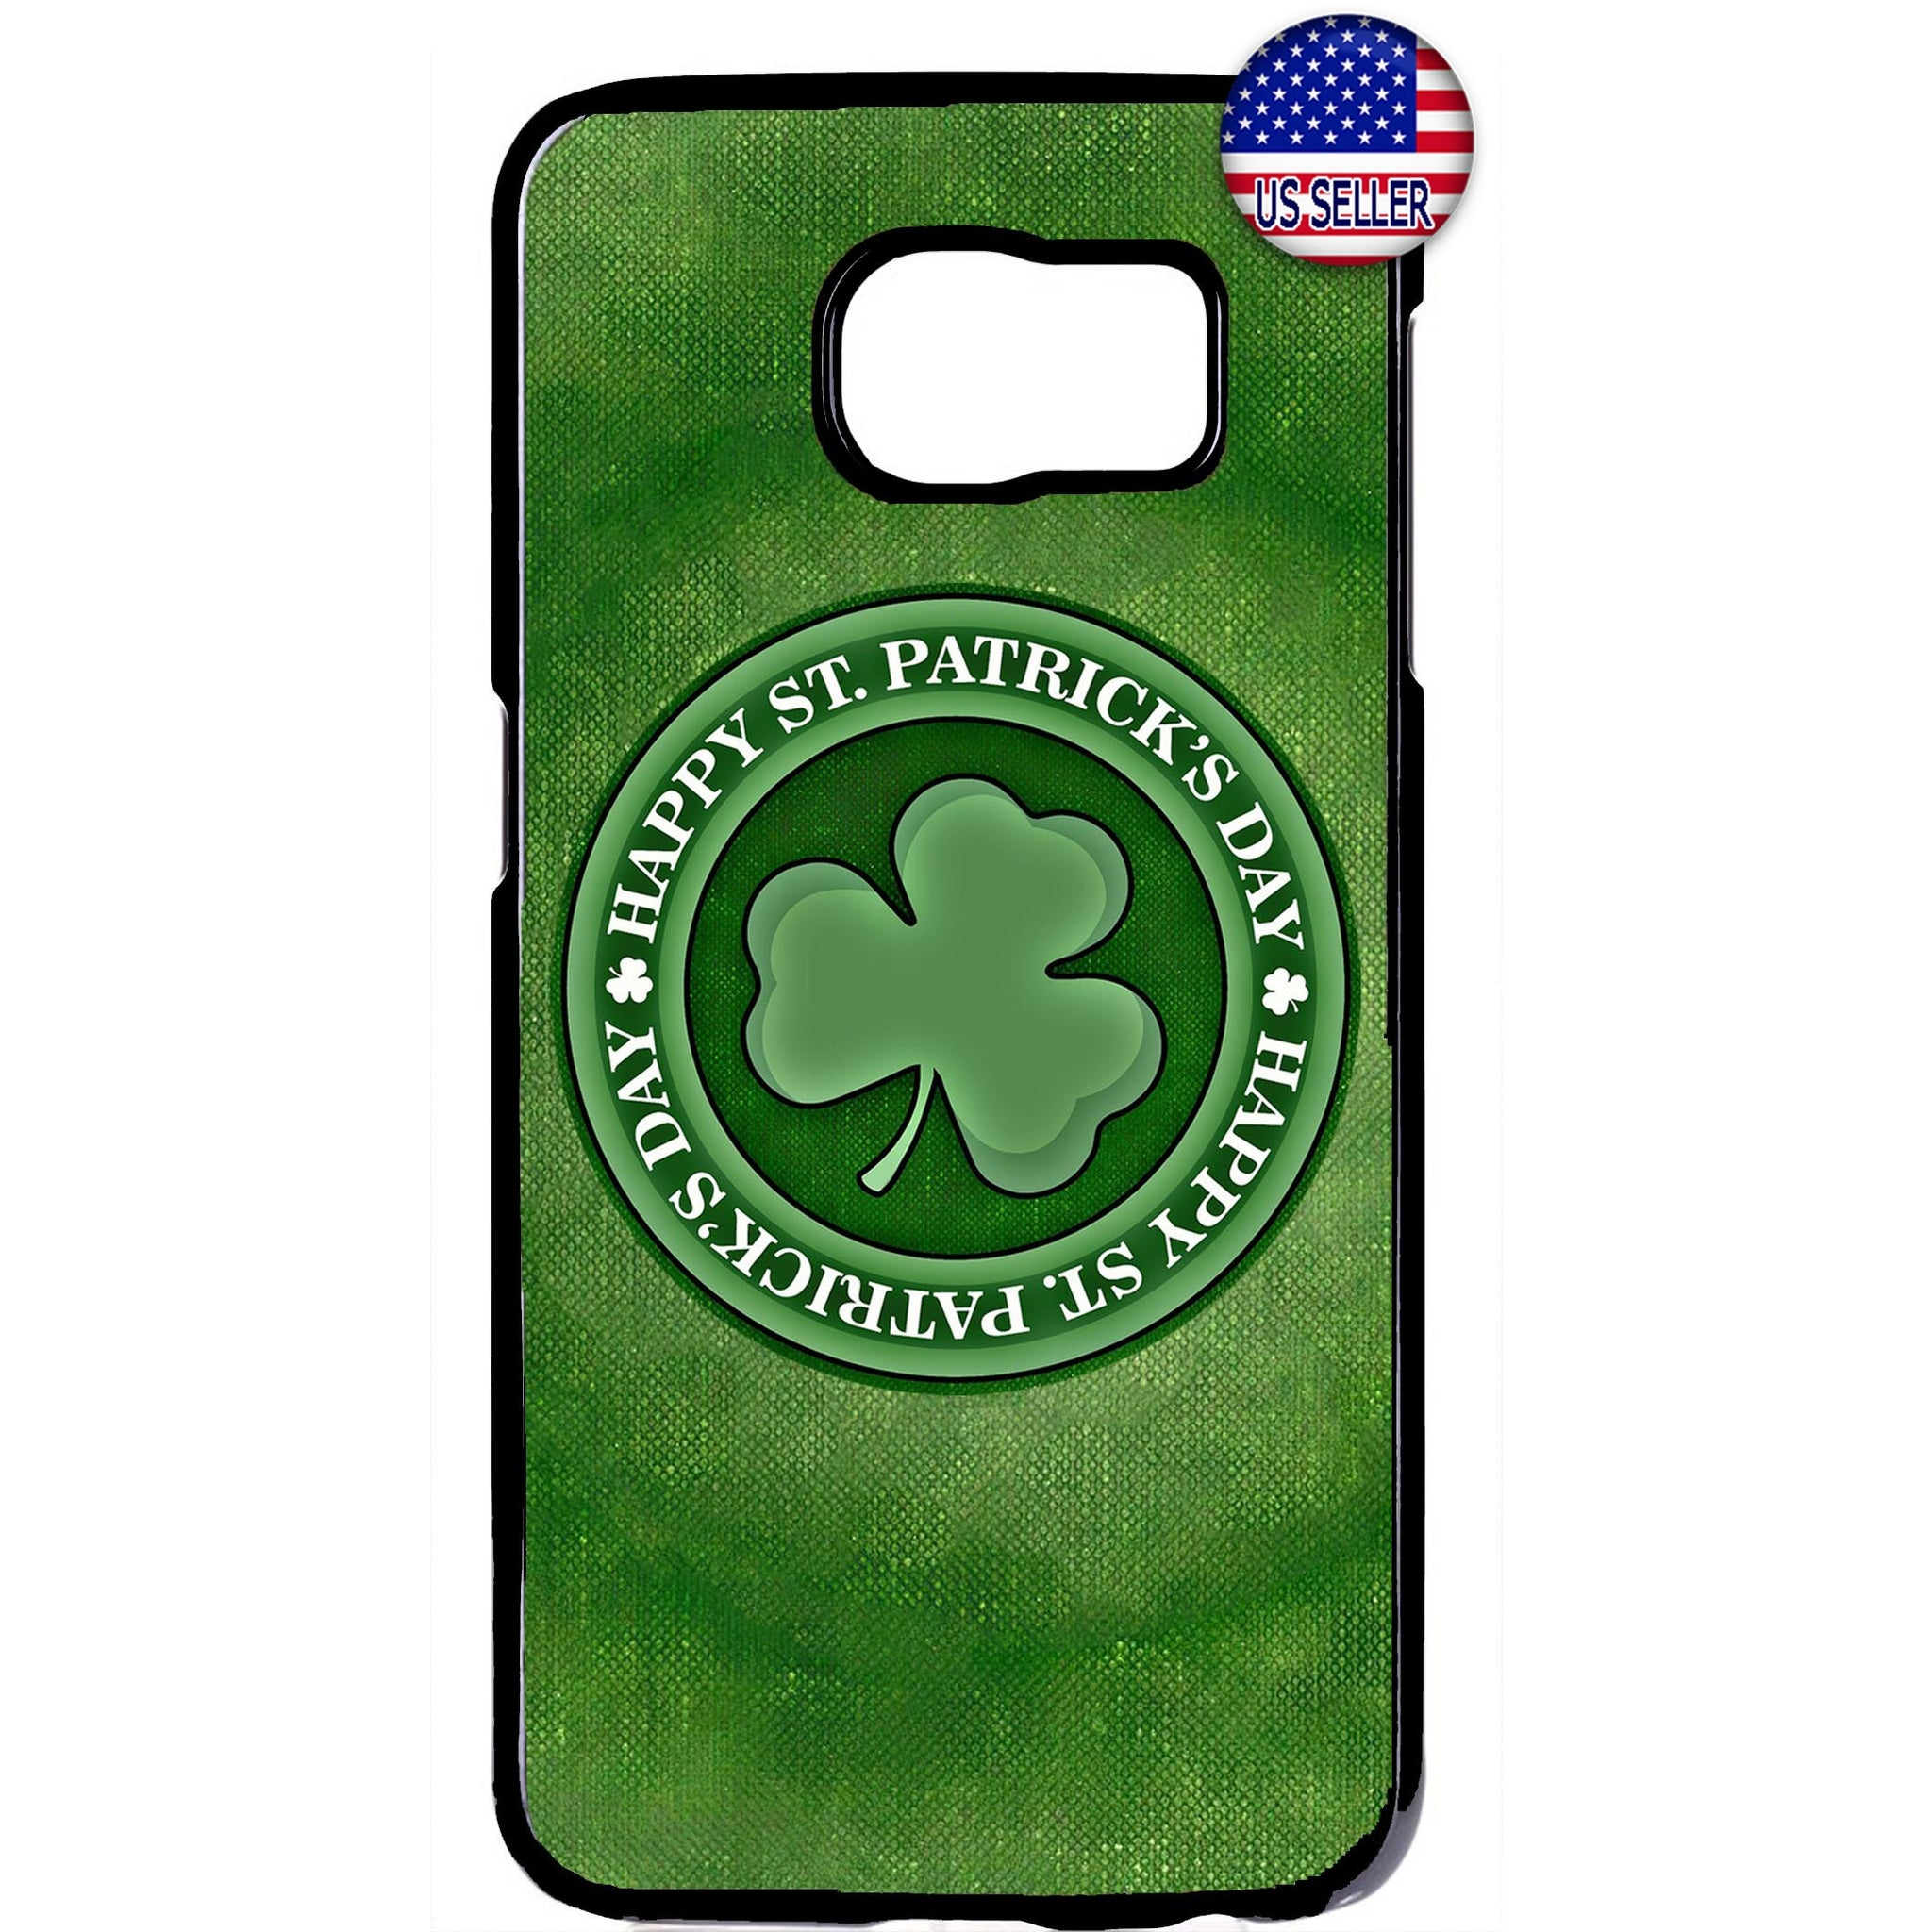 ST. Patrick's Day Clover Rubber Case Cover For Samsung Galaxy Note